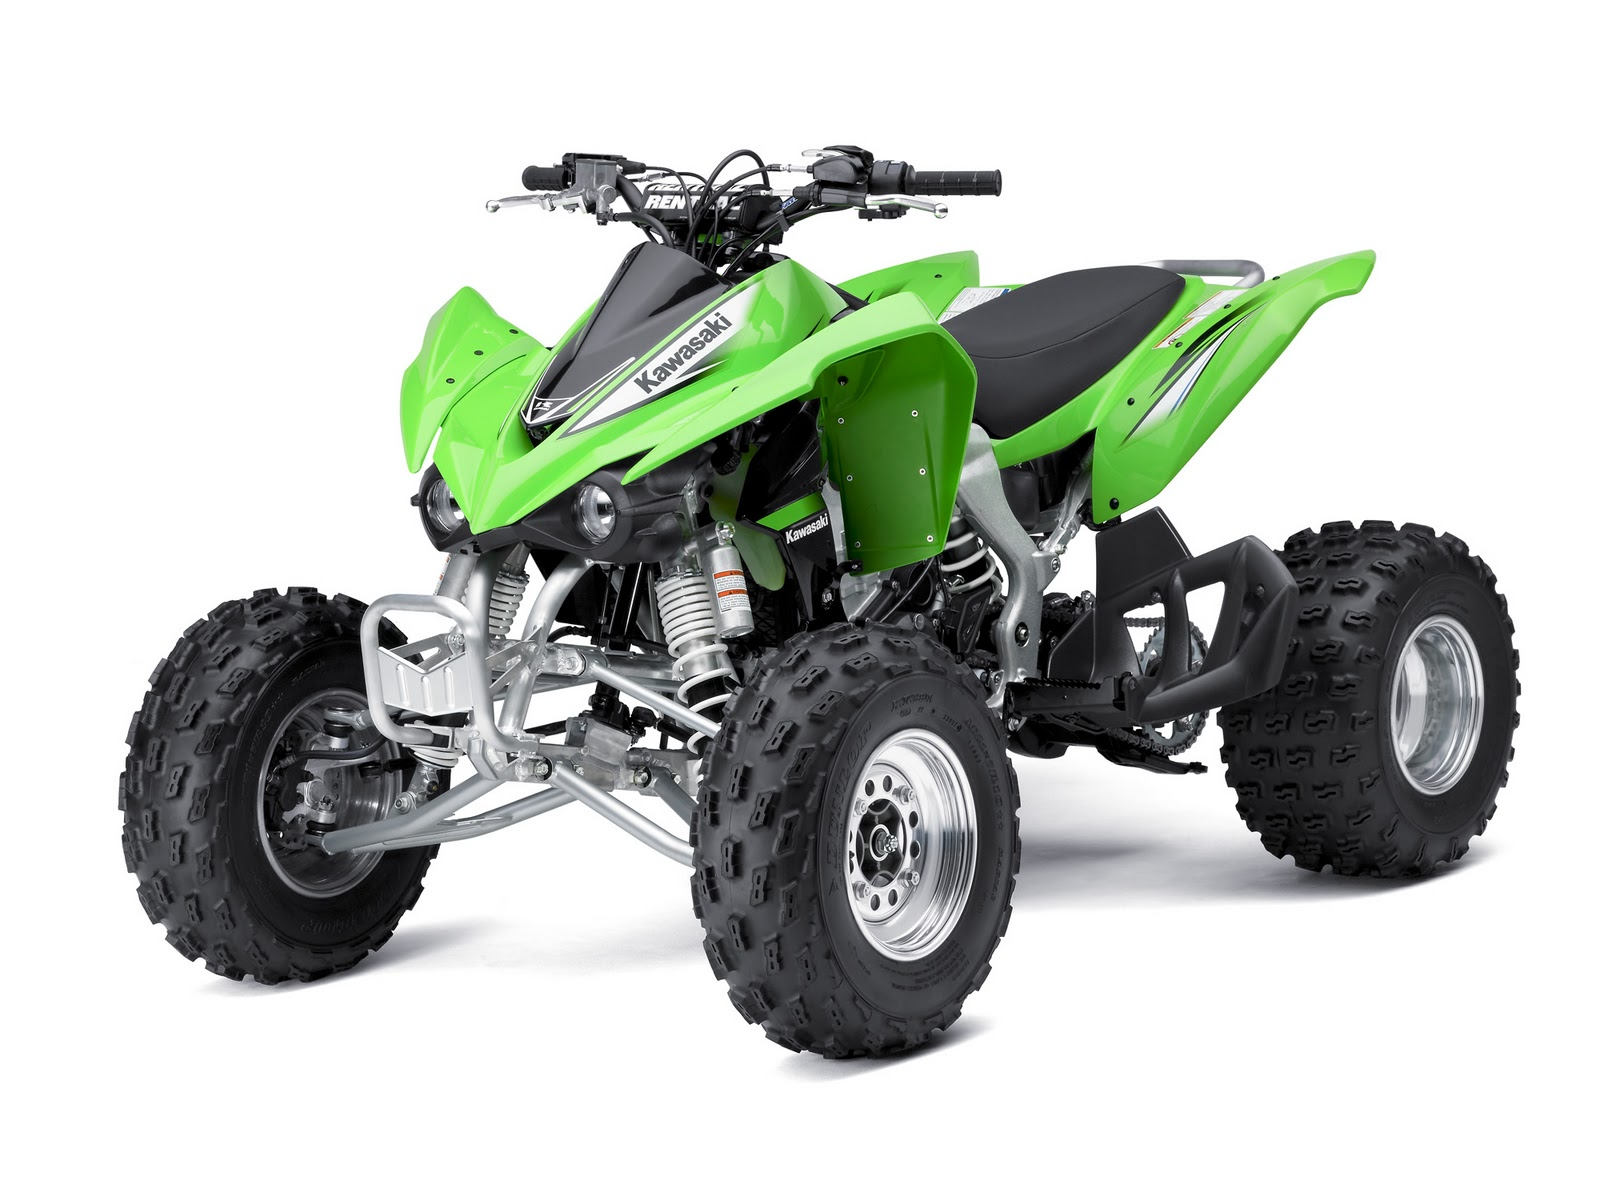 DR350 moreover 2017 Yz 125 Graphics Wiring Diagrams besides Wiring Diagram Manual For Yamaha 703 Control 41168 together with Yamaha Yfz 450 Wiring Diagram likewise We Ride Justin Barcias Geico Honda Crf250 Afterall He Doesnt Use It Anymore. on yamaha 450 engine diagram